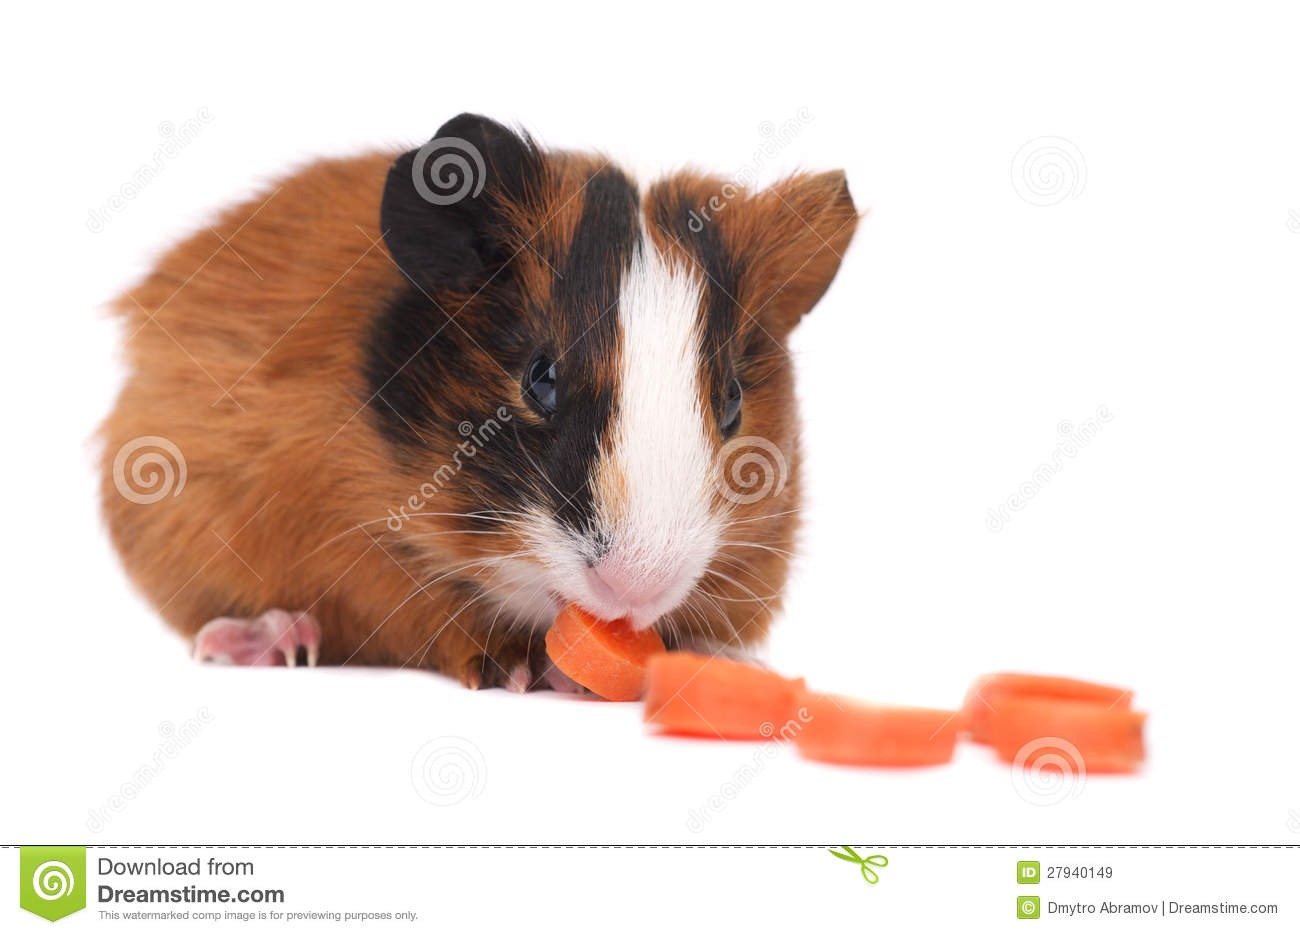 Guinea pig royalty free stock images image 27940149 for Guinea pig pictures free